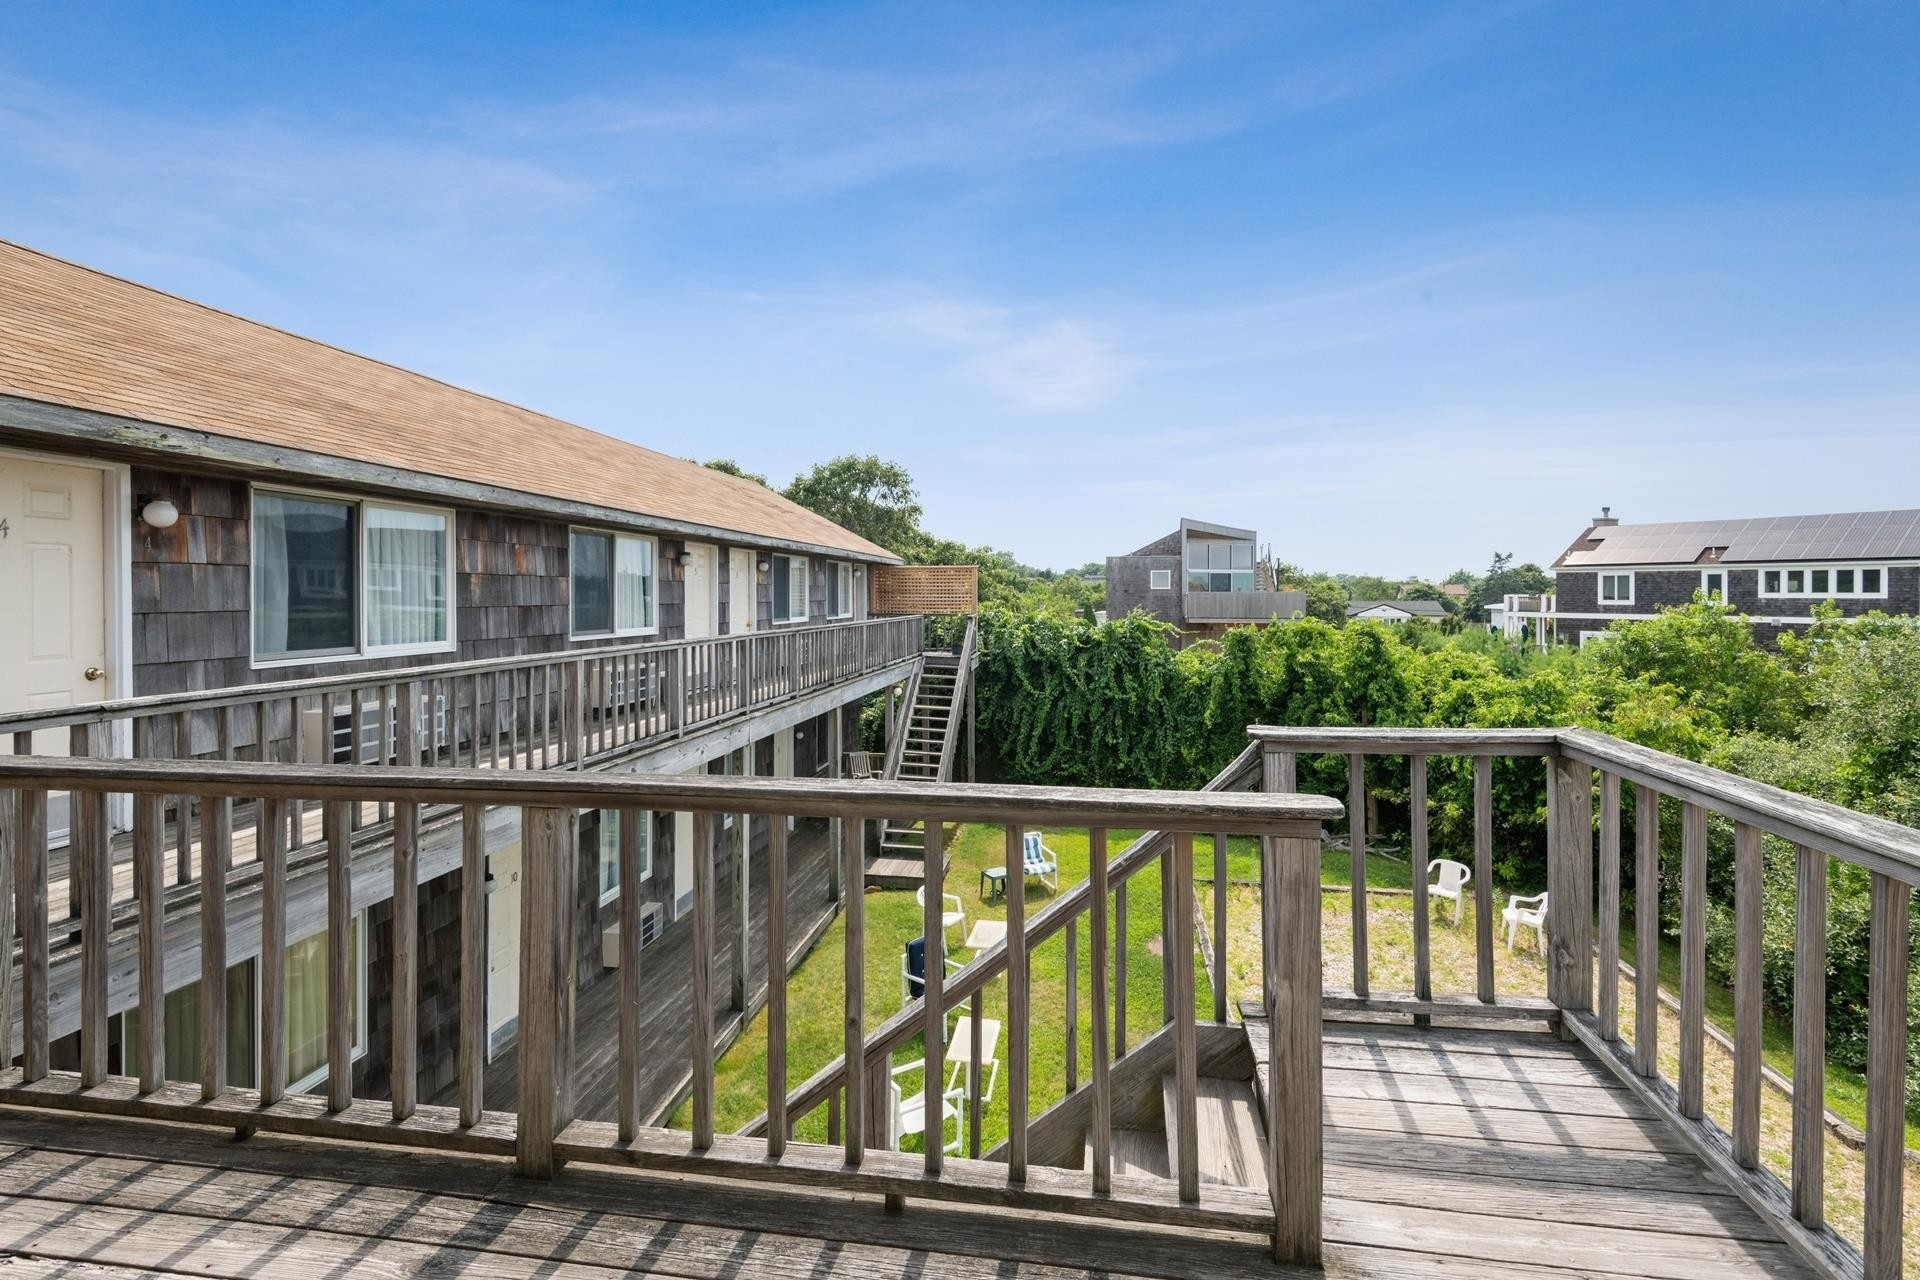 13. Hotel for Sale at Montauk, NY 11954